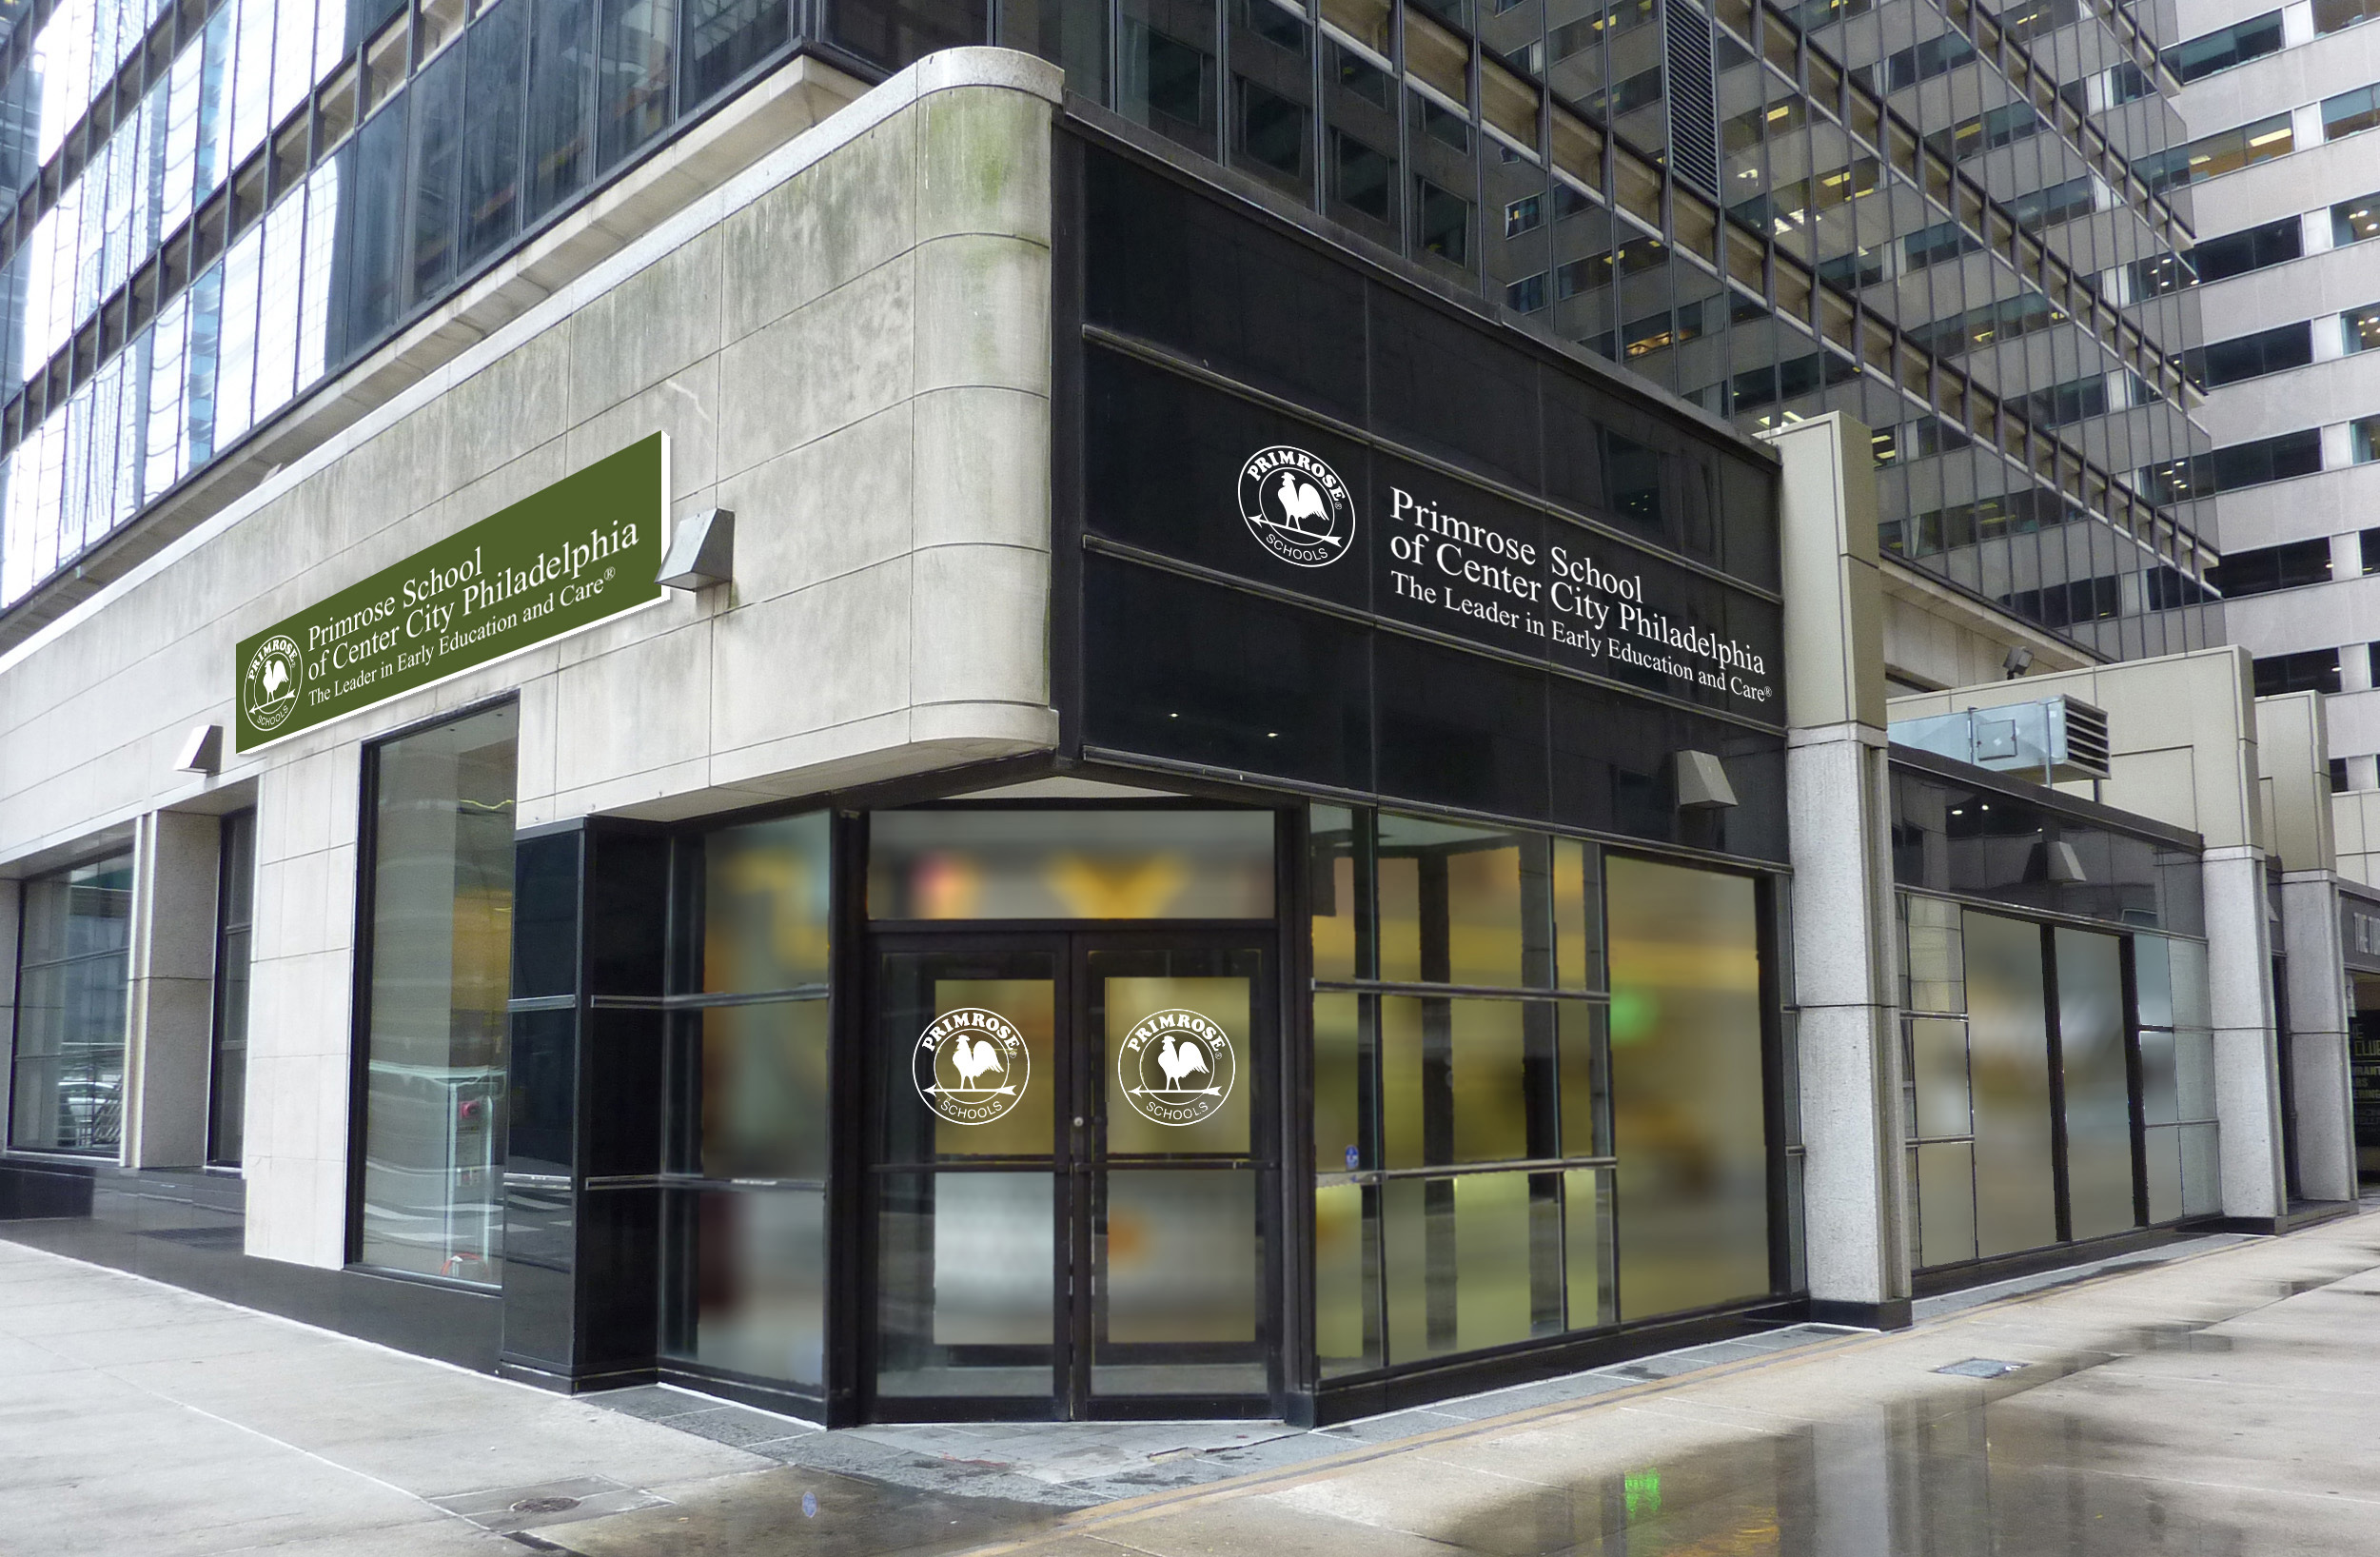 Primrose School of Center City is an urban school in downtown Philadelphia. The school is located within the plaza level of a high-rise office building along with other retailers.